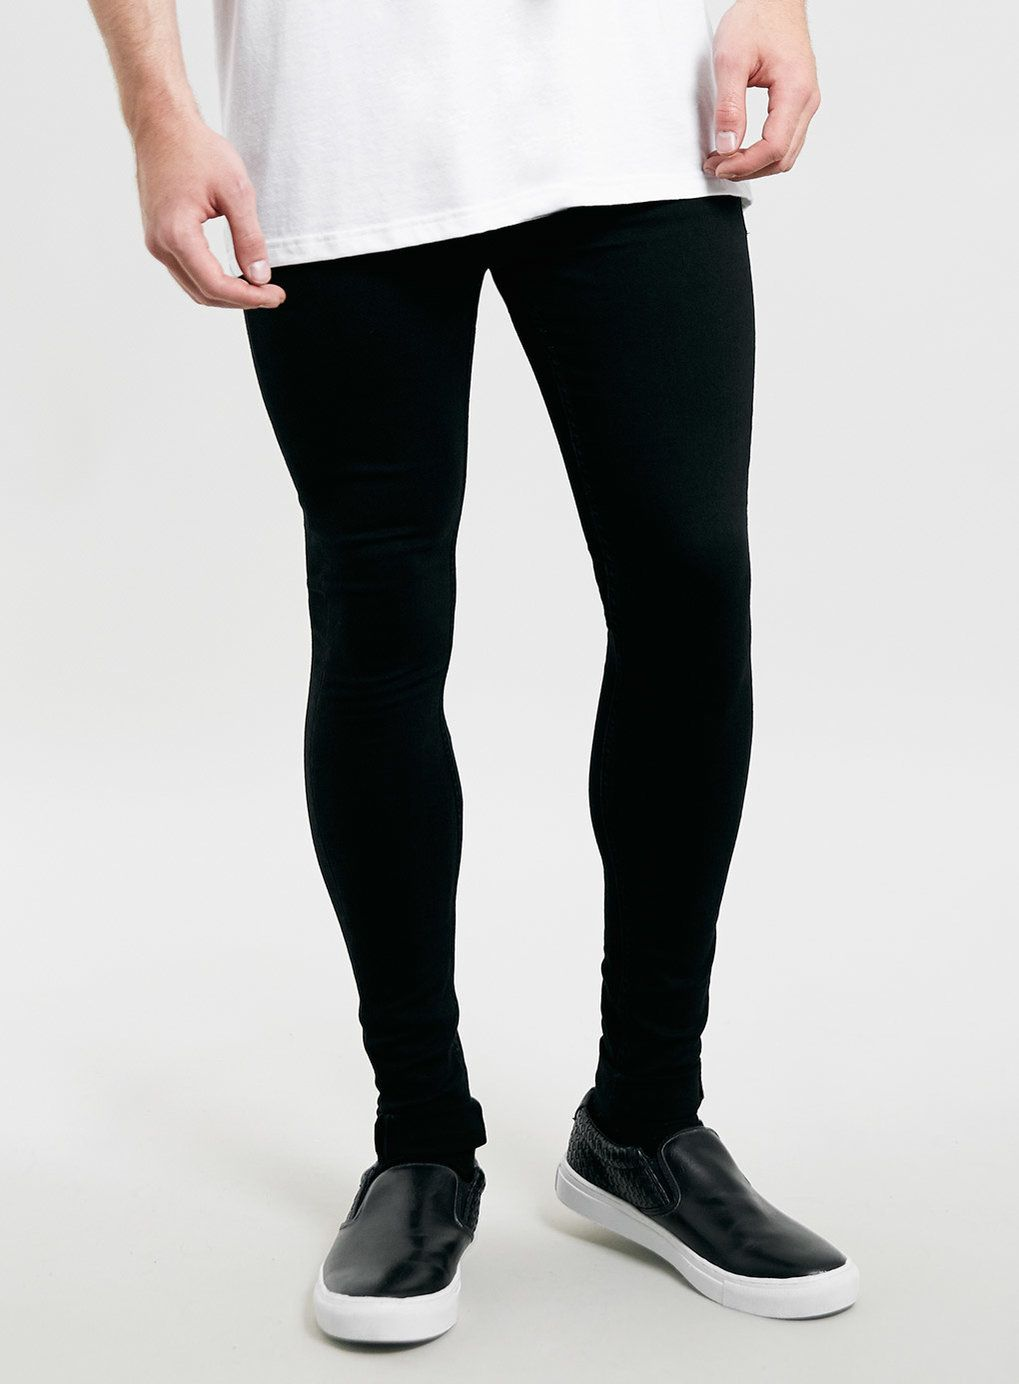 Black Super Spray On Skinny Jeans - Jeans - Clothing ...